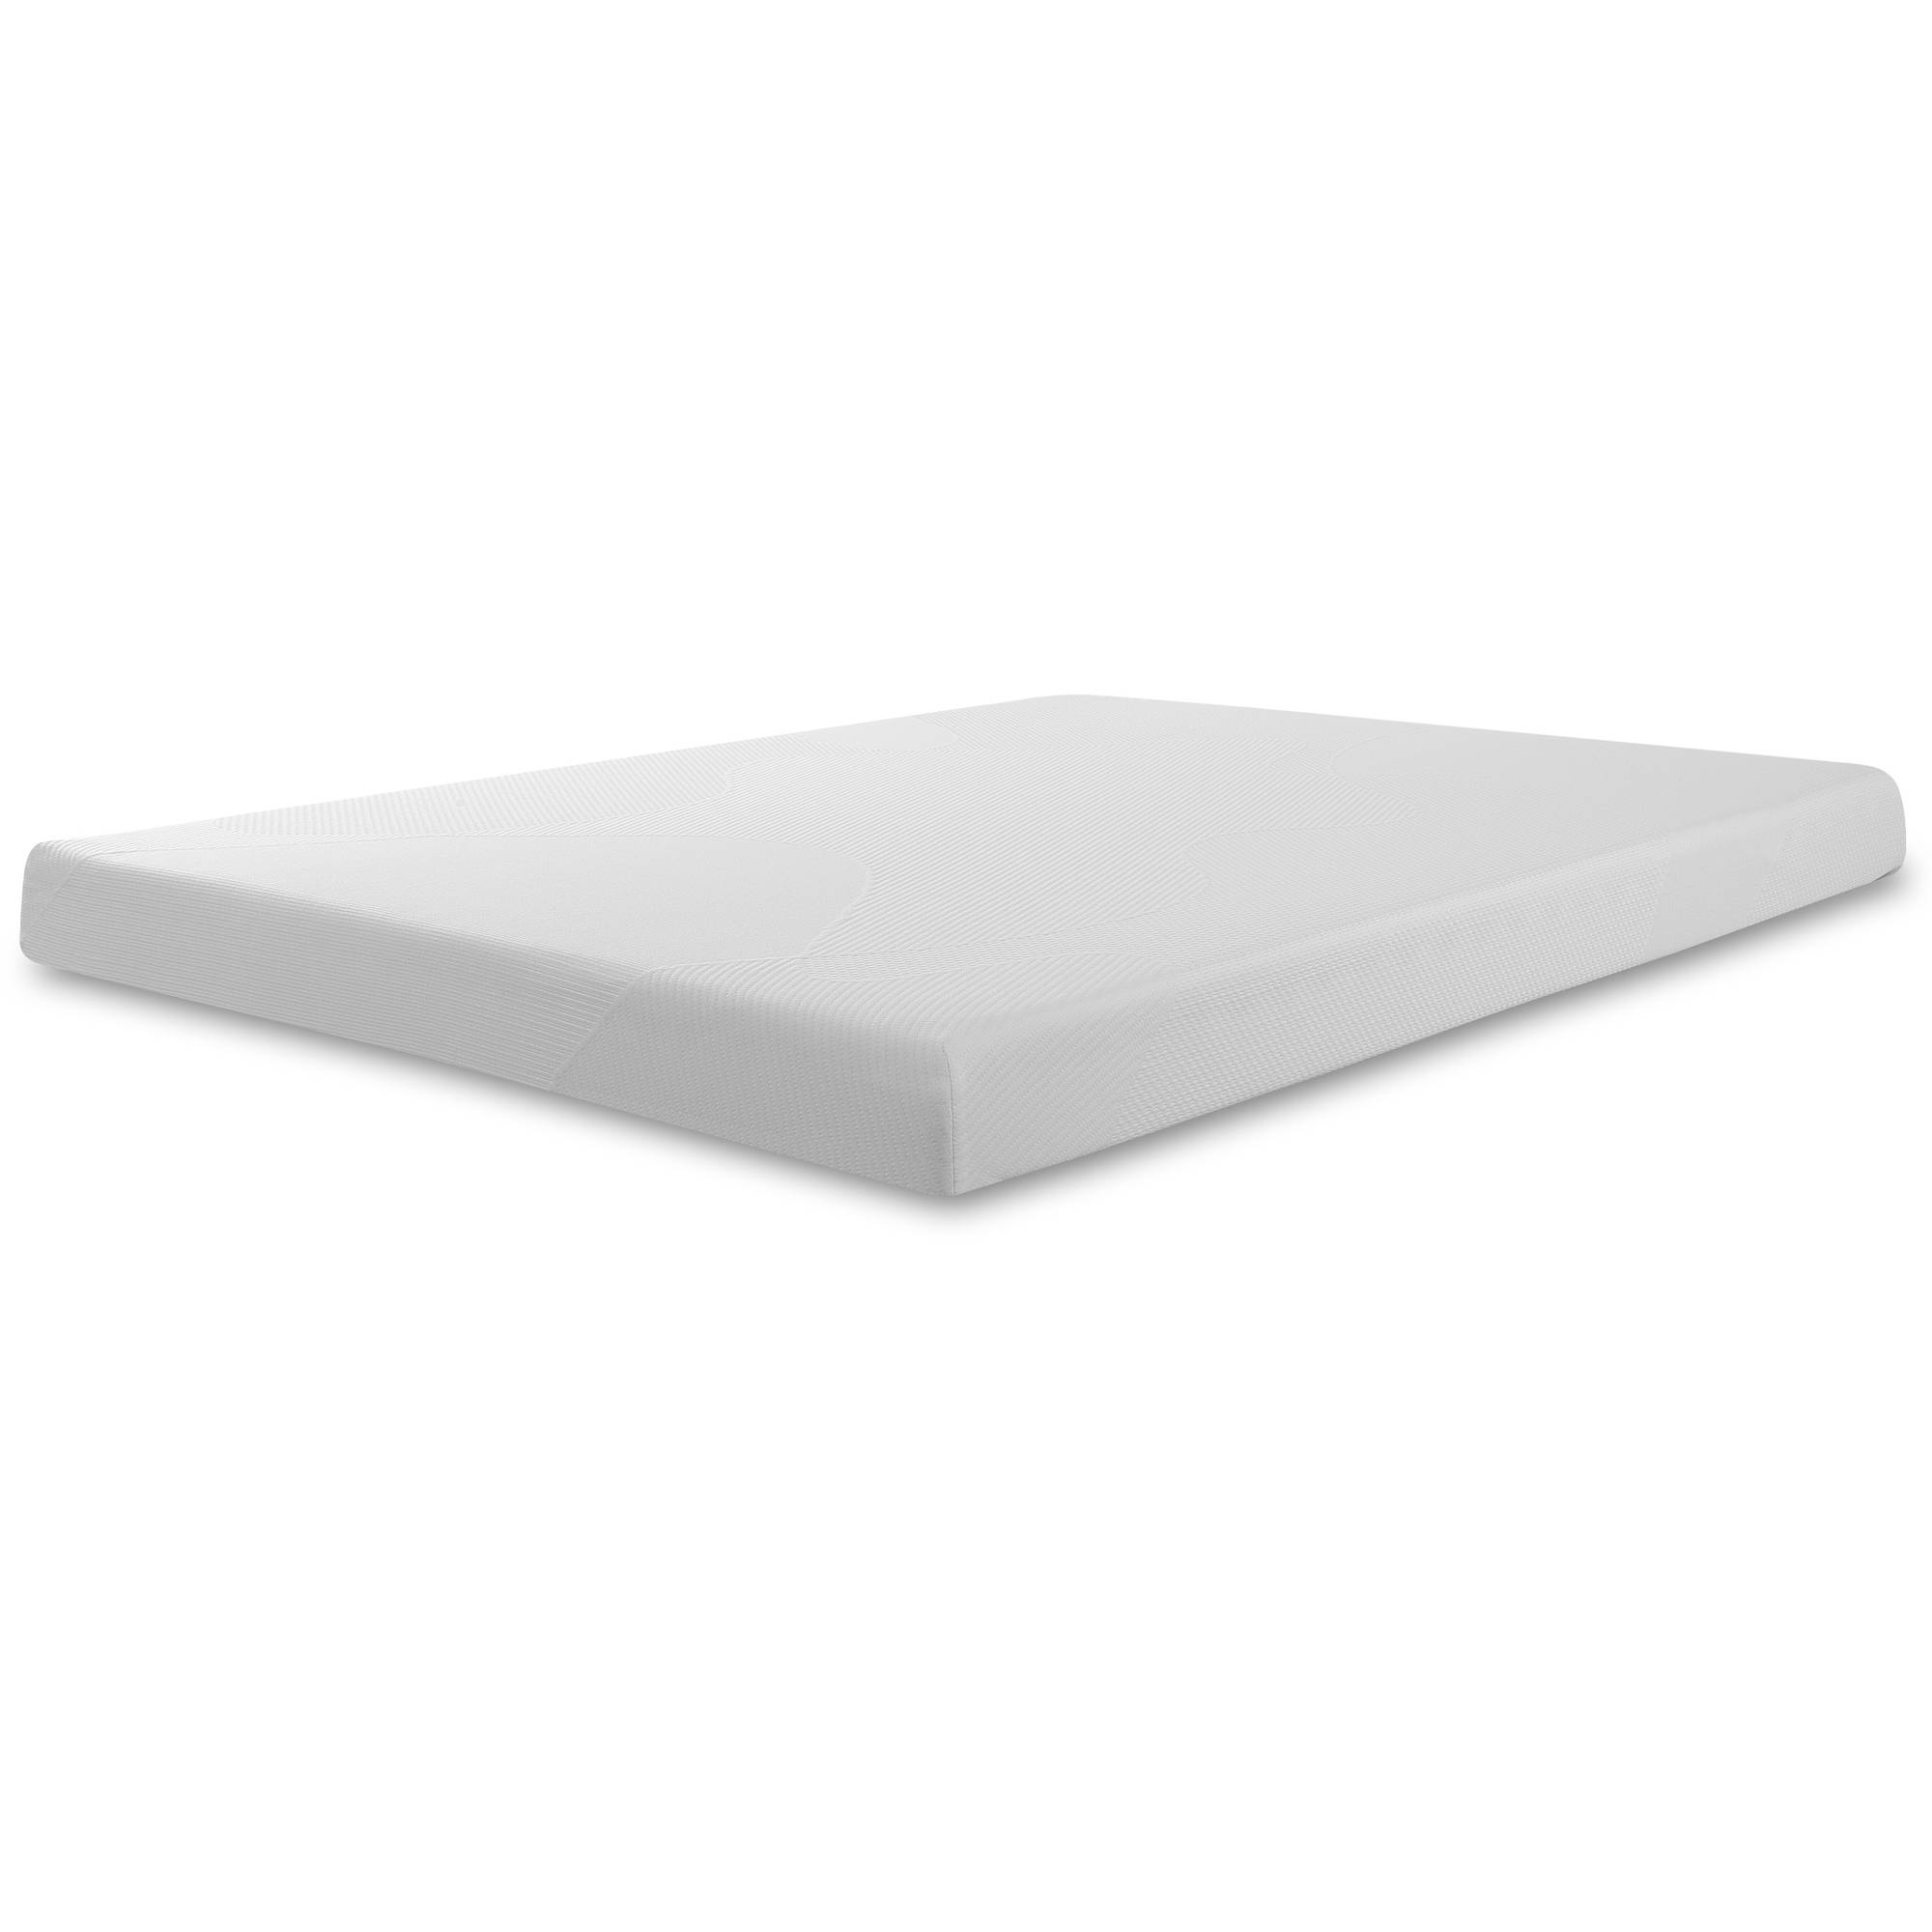 Spa sensation 6 39 39 memory foam mattress xl twin full queen king size firm bedroom ebay Memory foam king size mattress